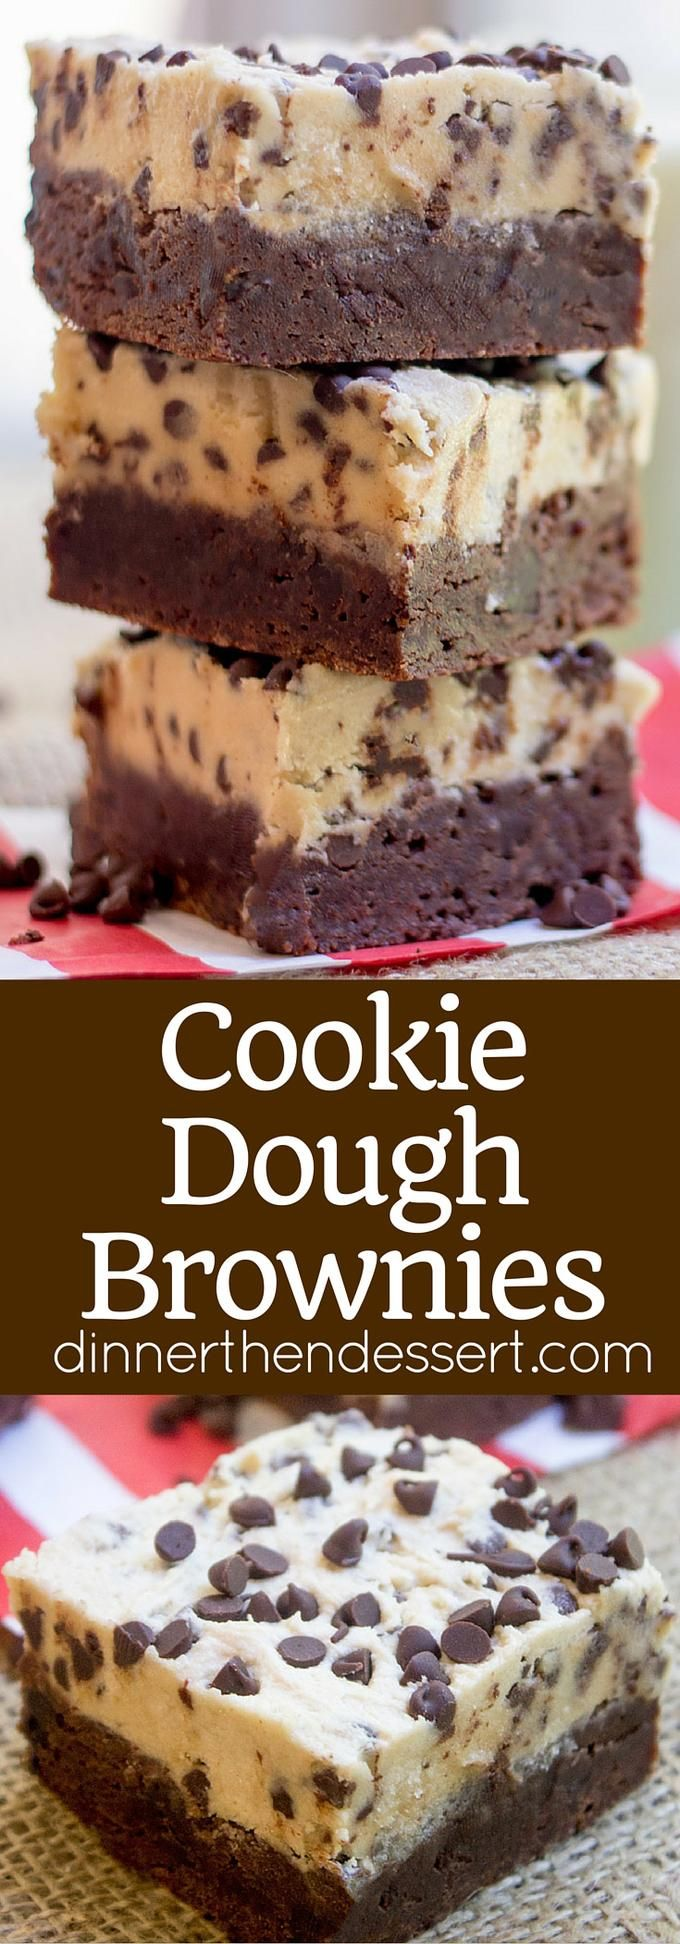 Cookie Dough Brownies made with a rich dark chocolate brownie base and an eggless cookie dough layer. The best part of cookies and brownies…